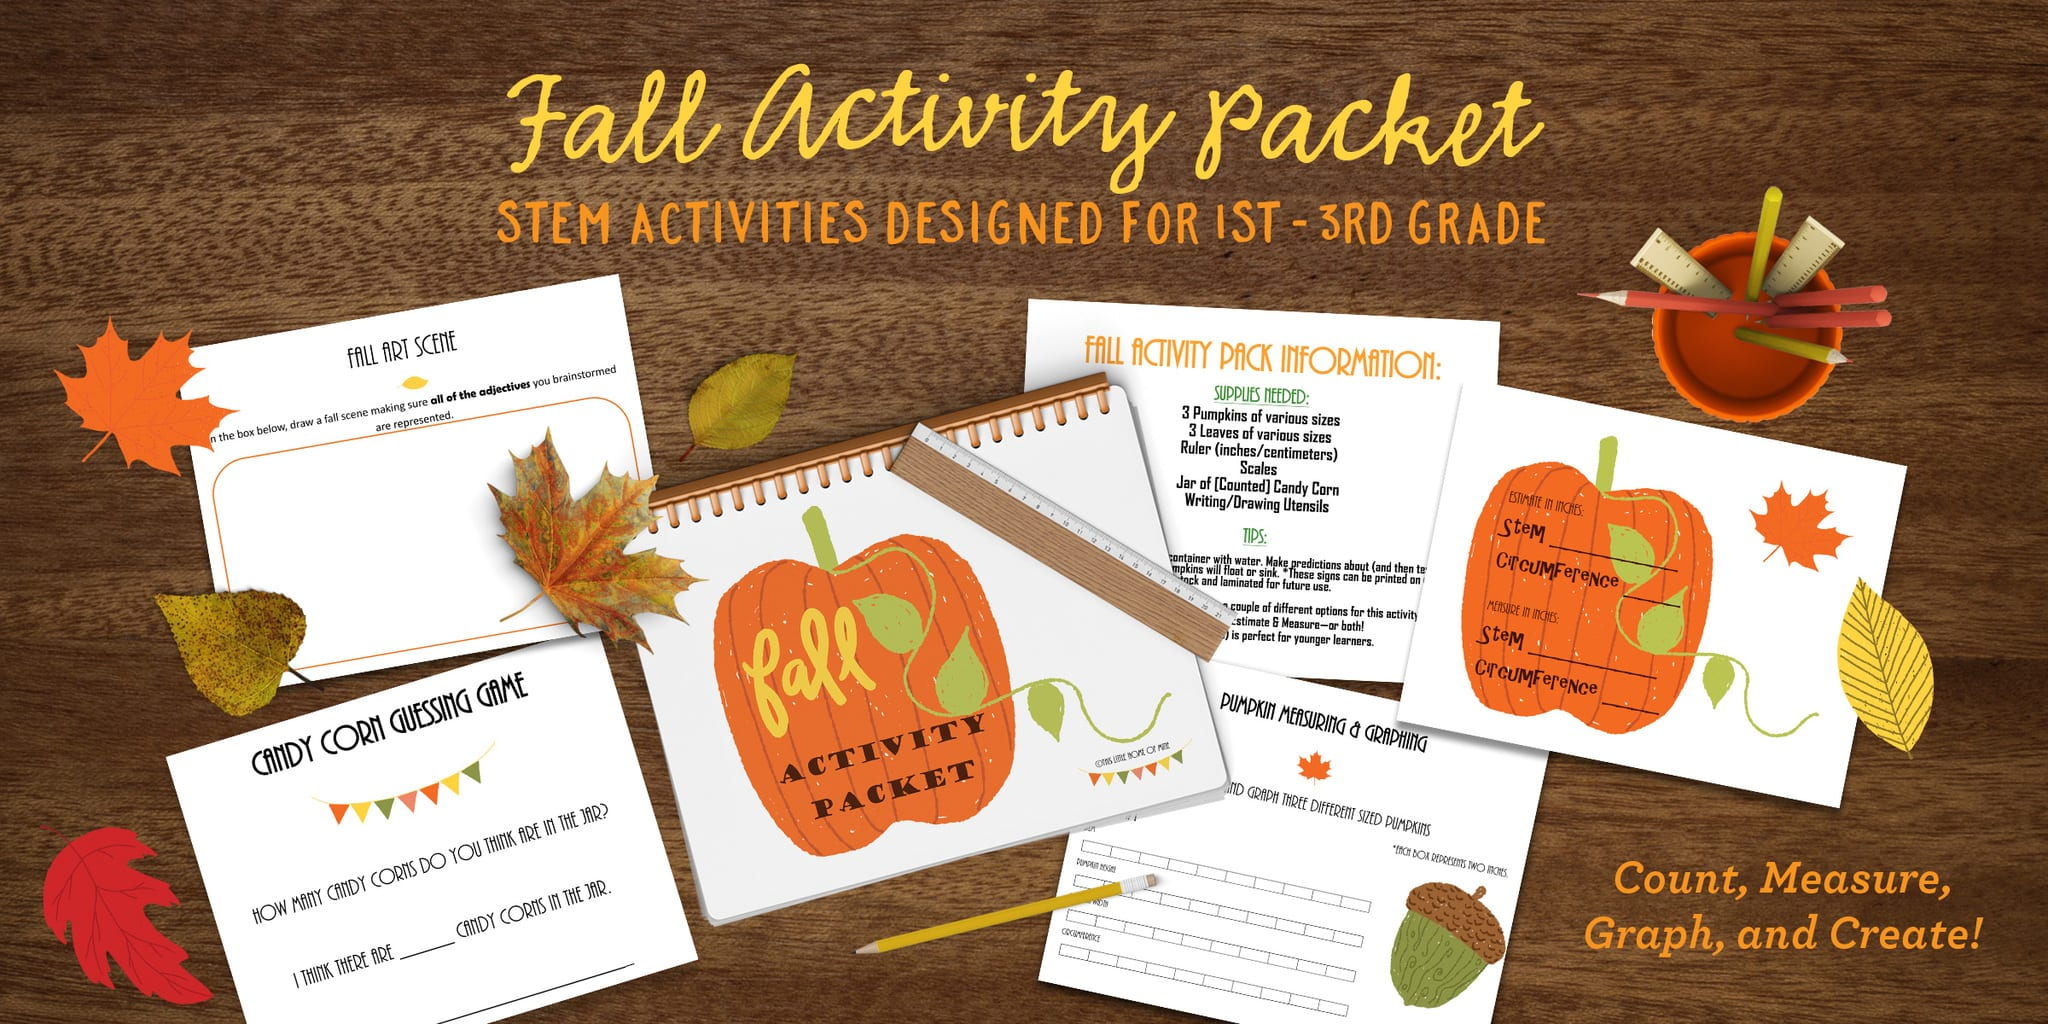 Fall Activity Packet: STEM Activities for 1st-3rd Grade by This Little Home of Mine